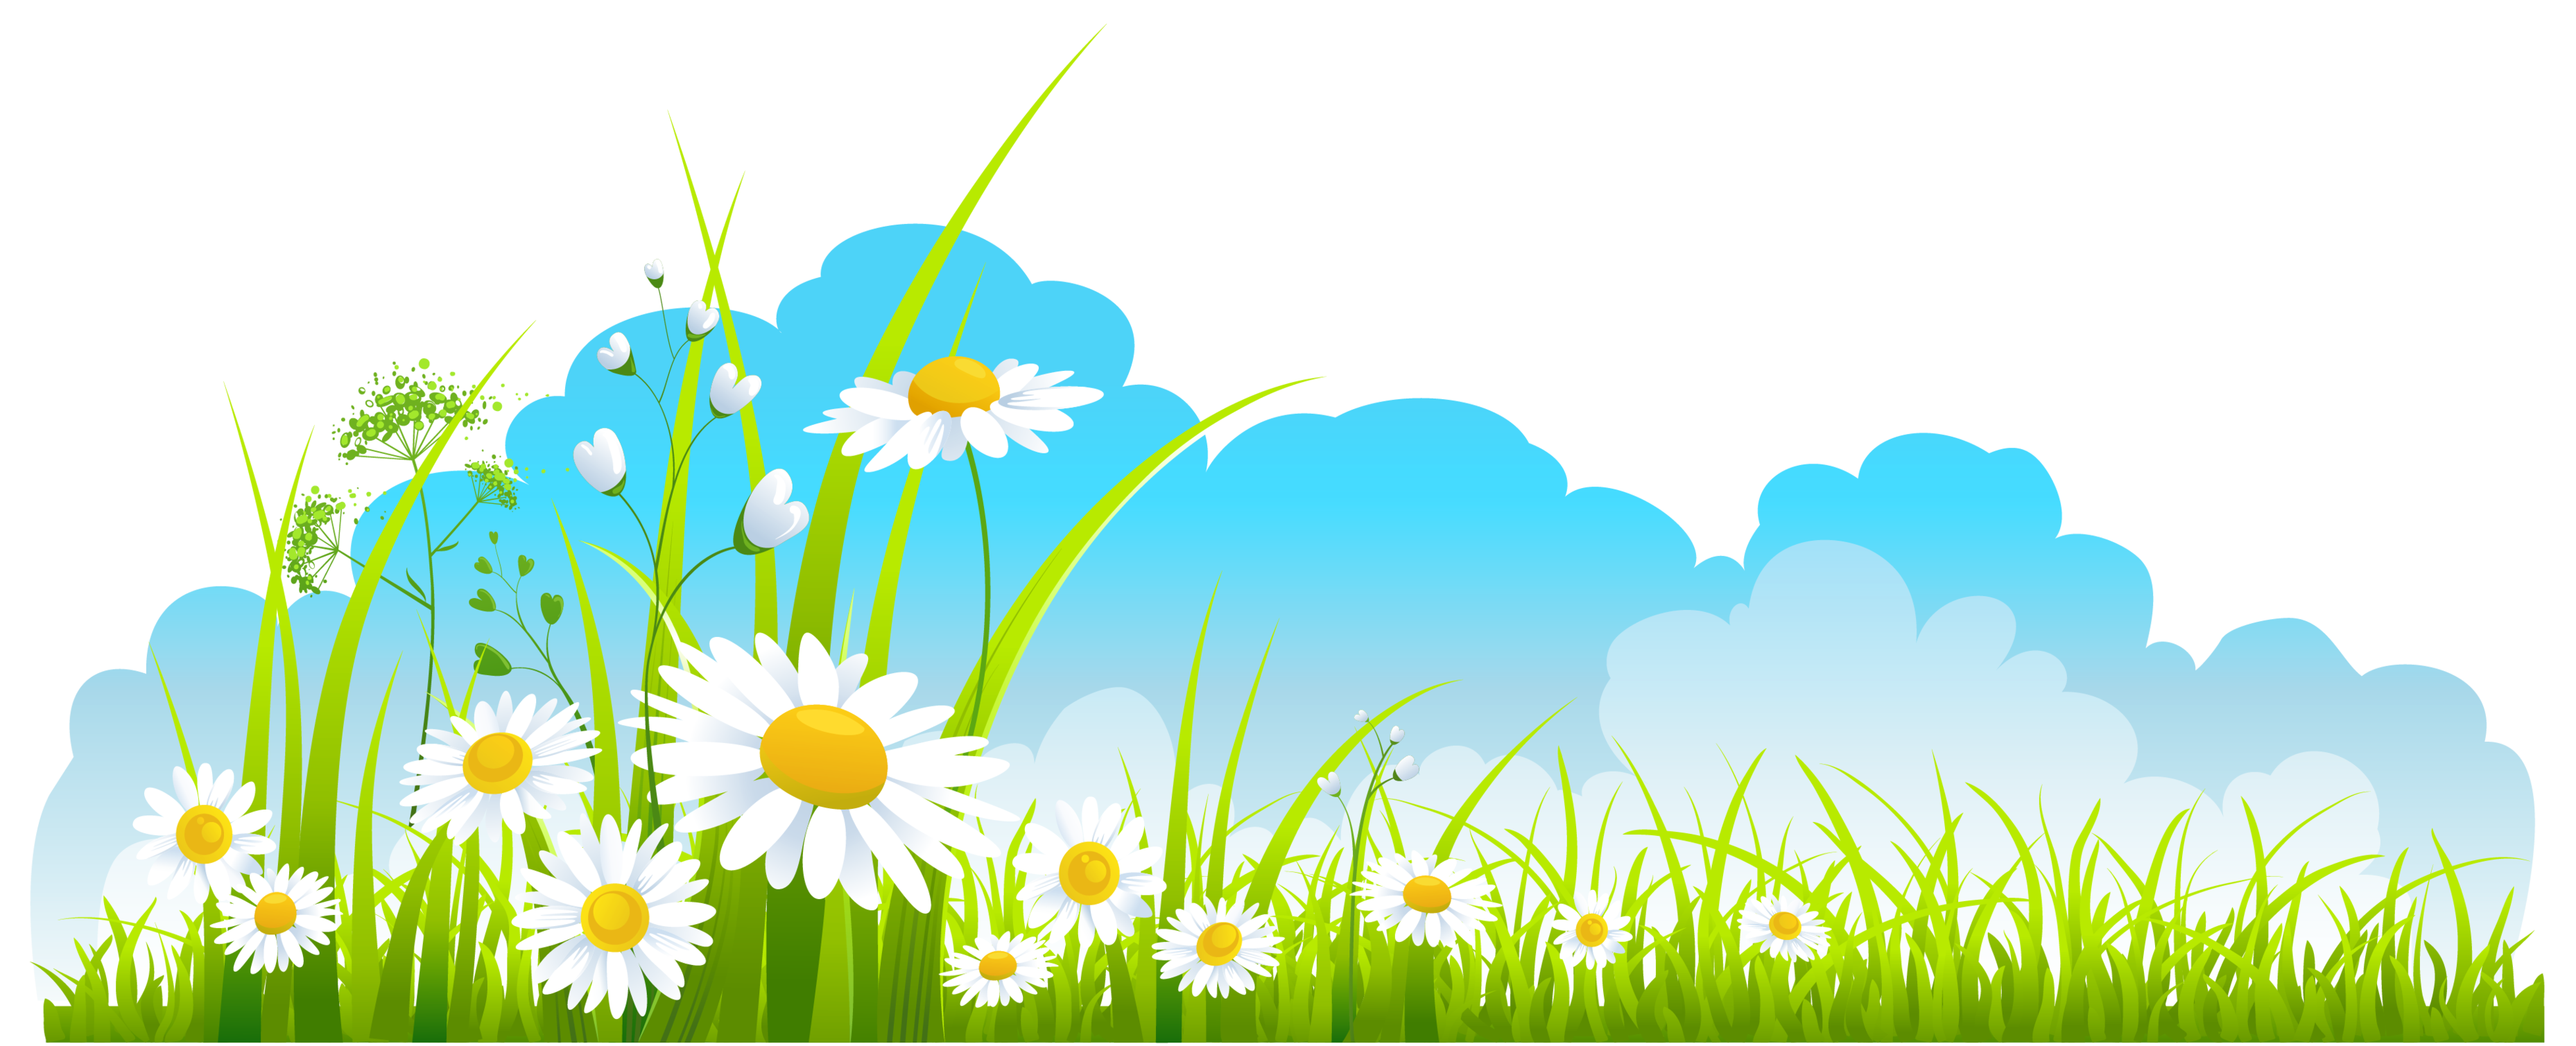 Nature clipart spring. Clip art image library